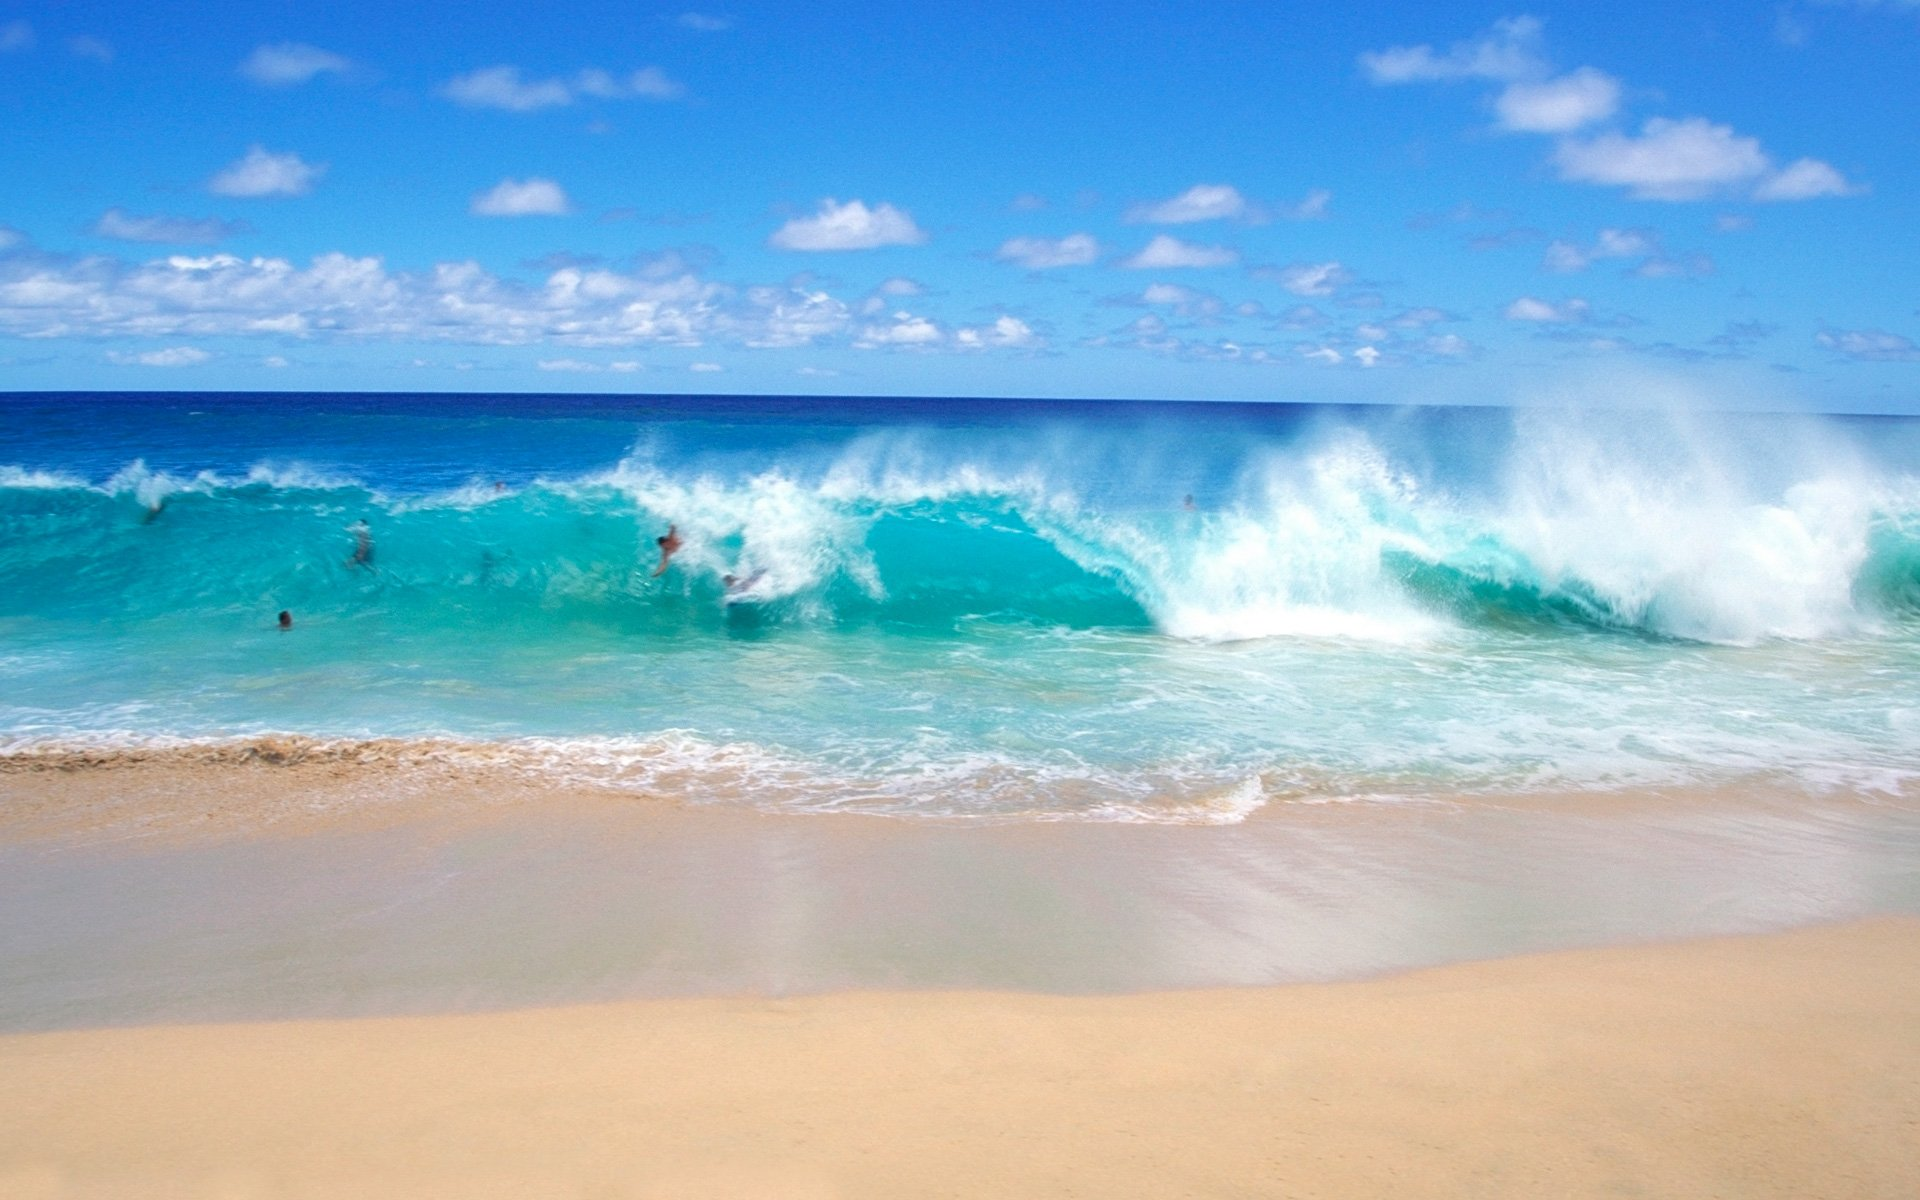 moving beach backgrounds for wallpaper - photo #2